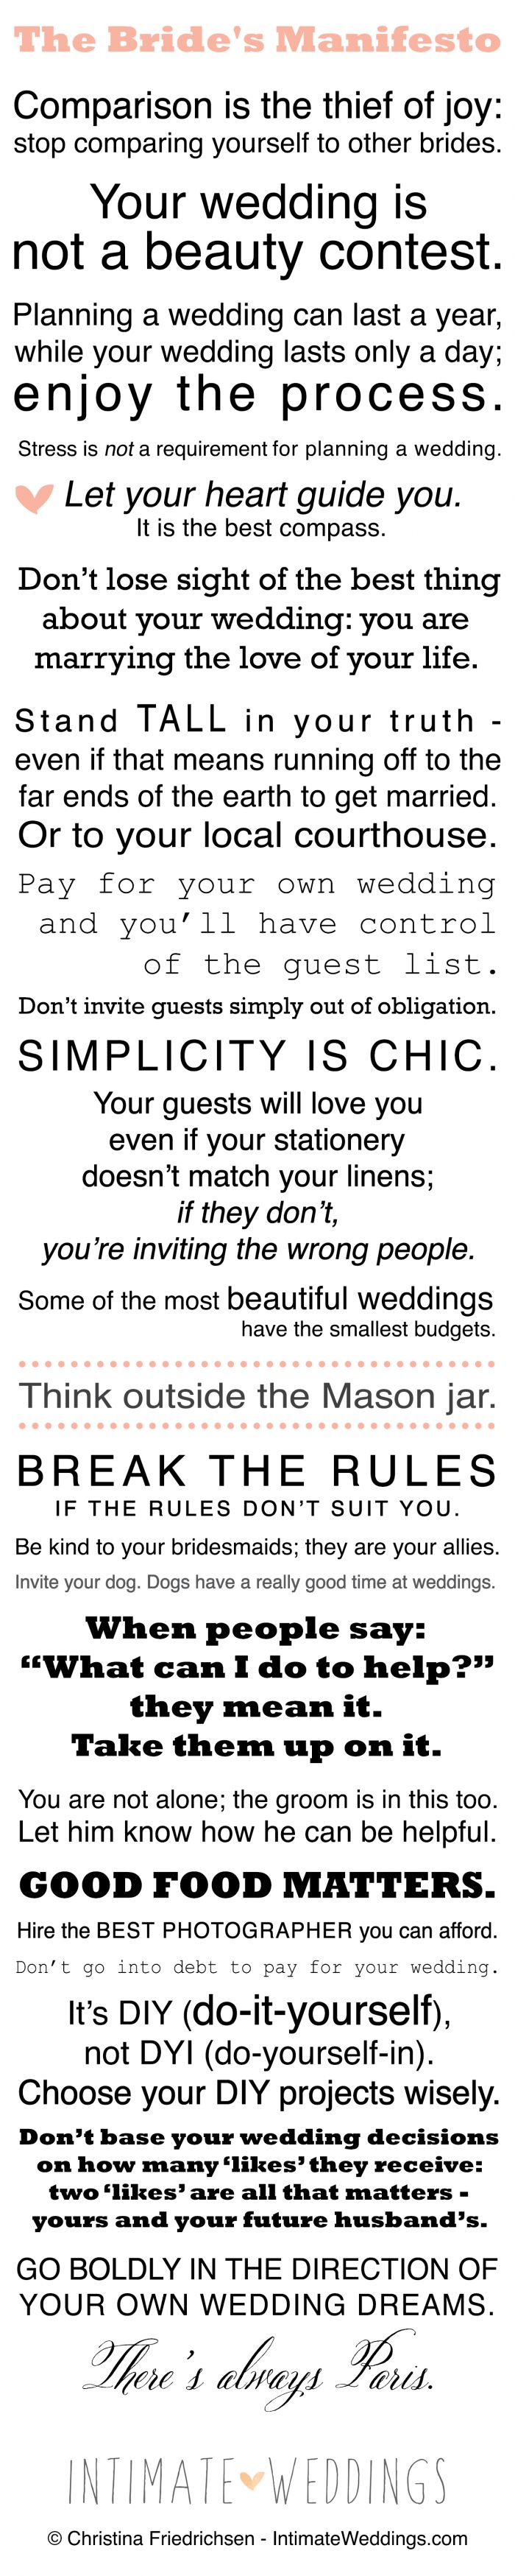 The Bride's Manifesto – How To Ward Off The Wedding Crazies